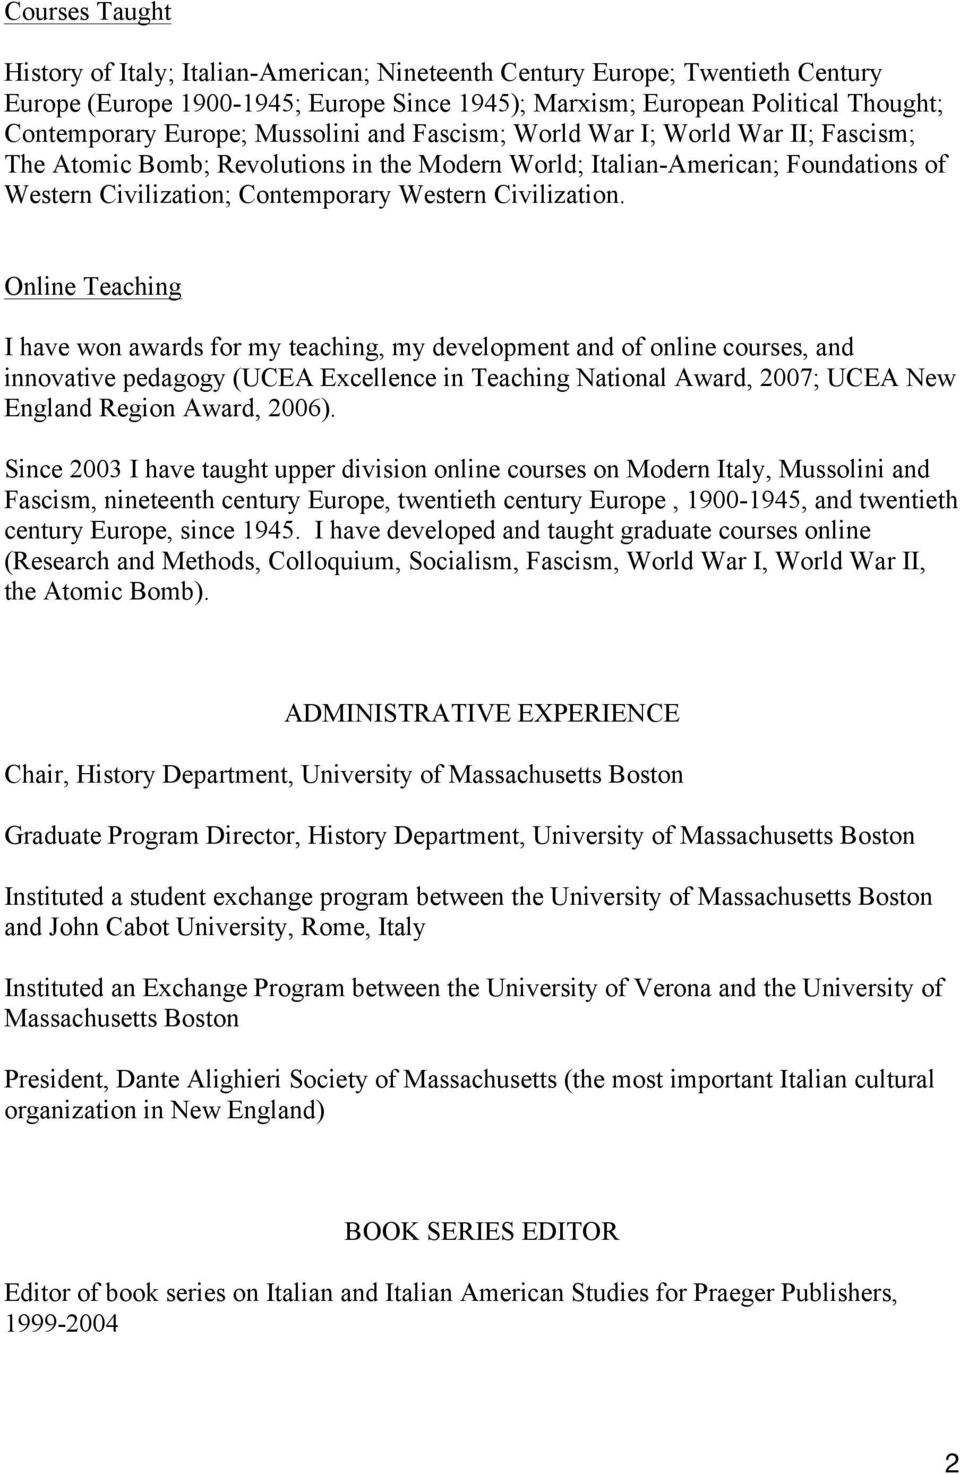 Online Teaching I have won awards for my teaching, my development and of online courses, and innovative pedagogy (UCEA Excellence in Teaching National Award, 2007; UCEA New England Region Award,